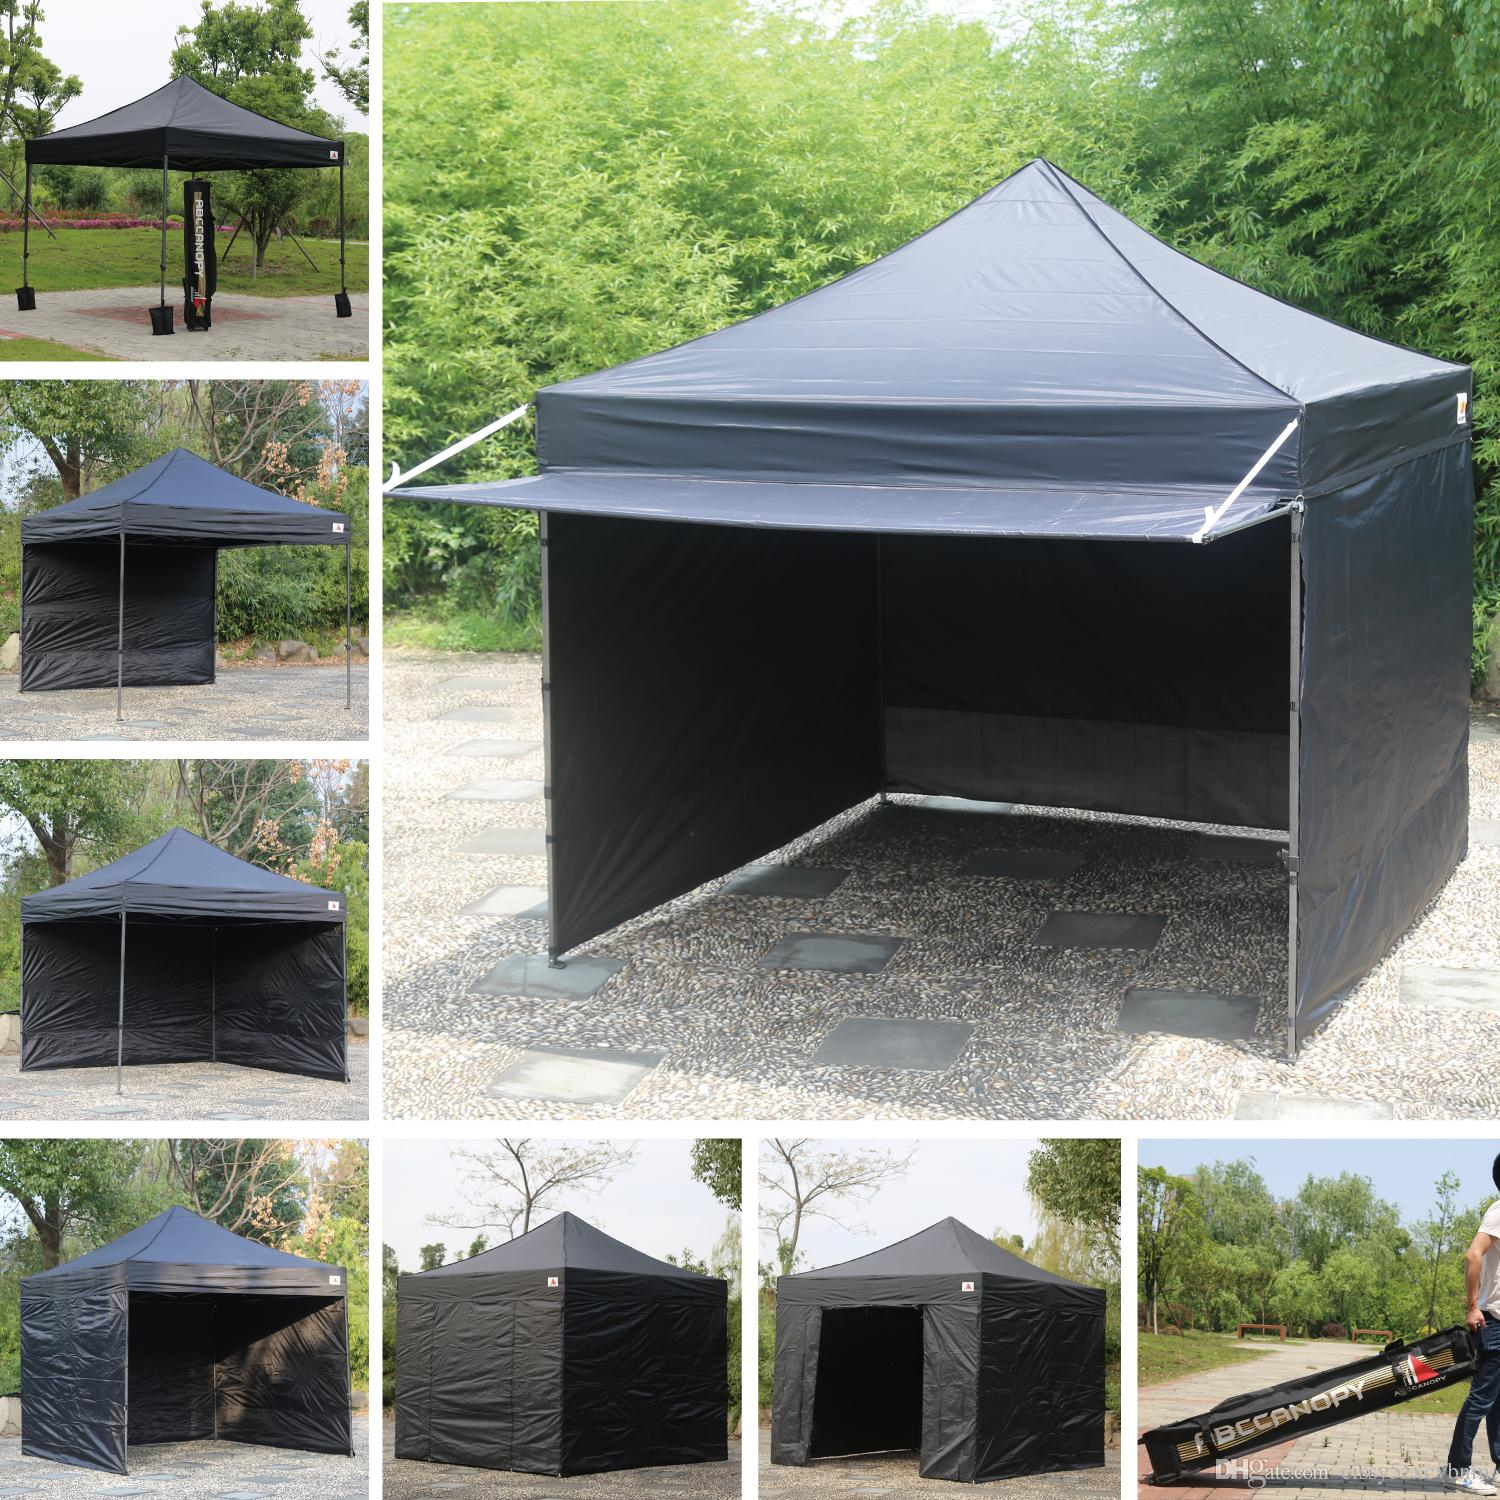 Instant Pop Up Shade : Abccanopy easy pop up canopy tent instant